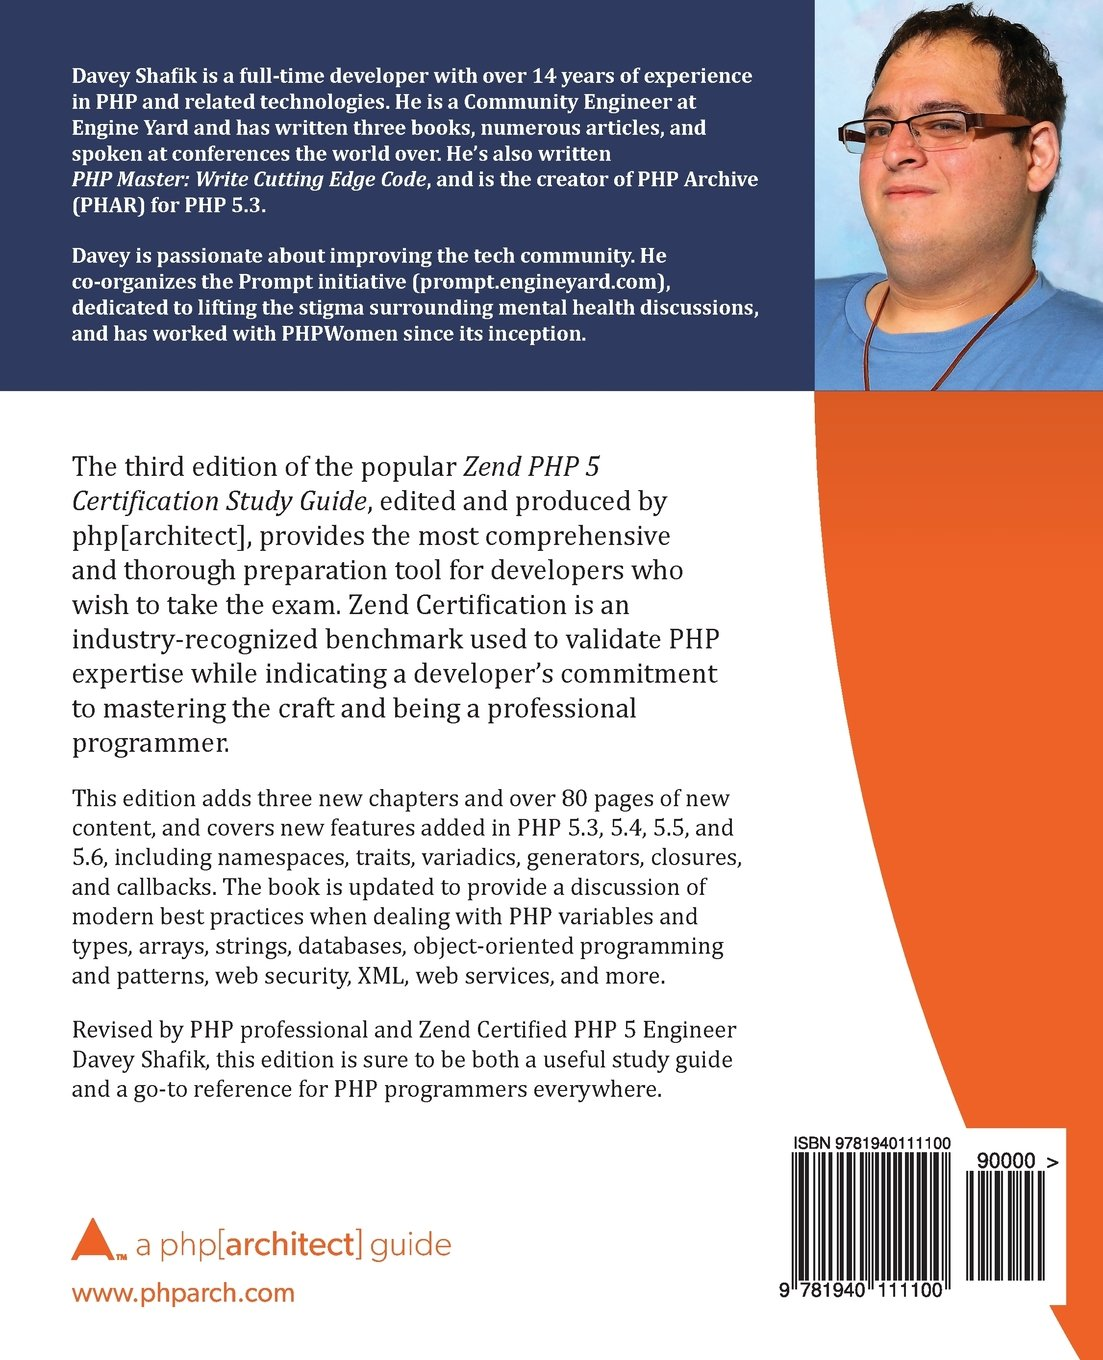 Zend certification study guide third edition davey shafik ben zend certification study guide third edition davey shafik ben ramsey oscar merida eli white kevin bruce 9781940111100 amazon books 1betcityfo Gallery